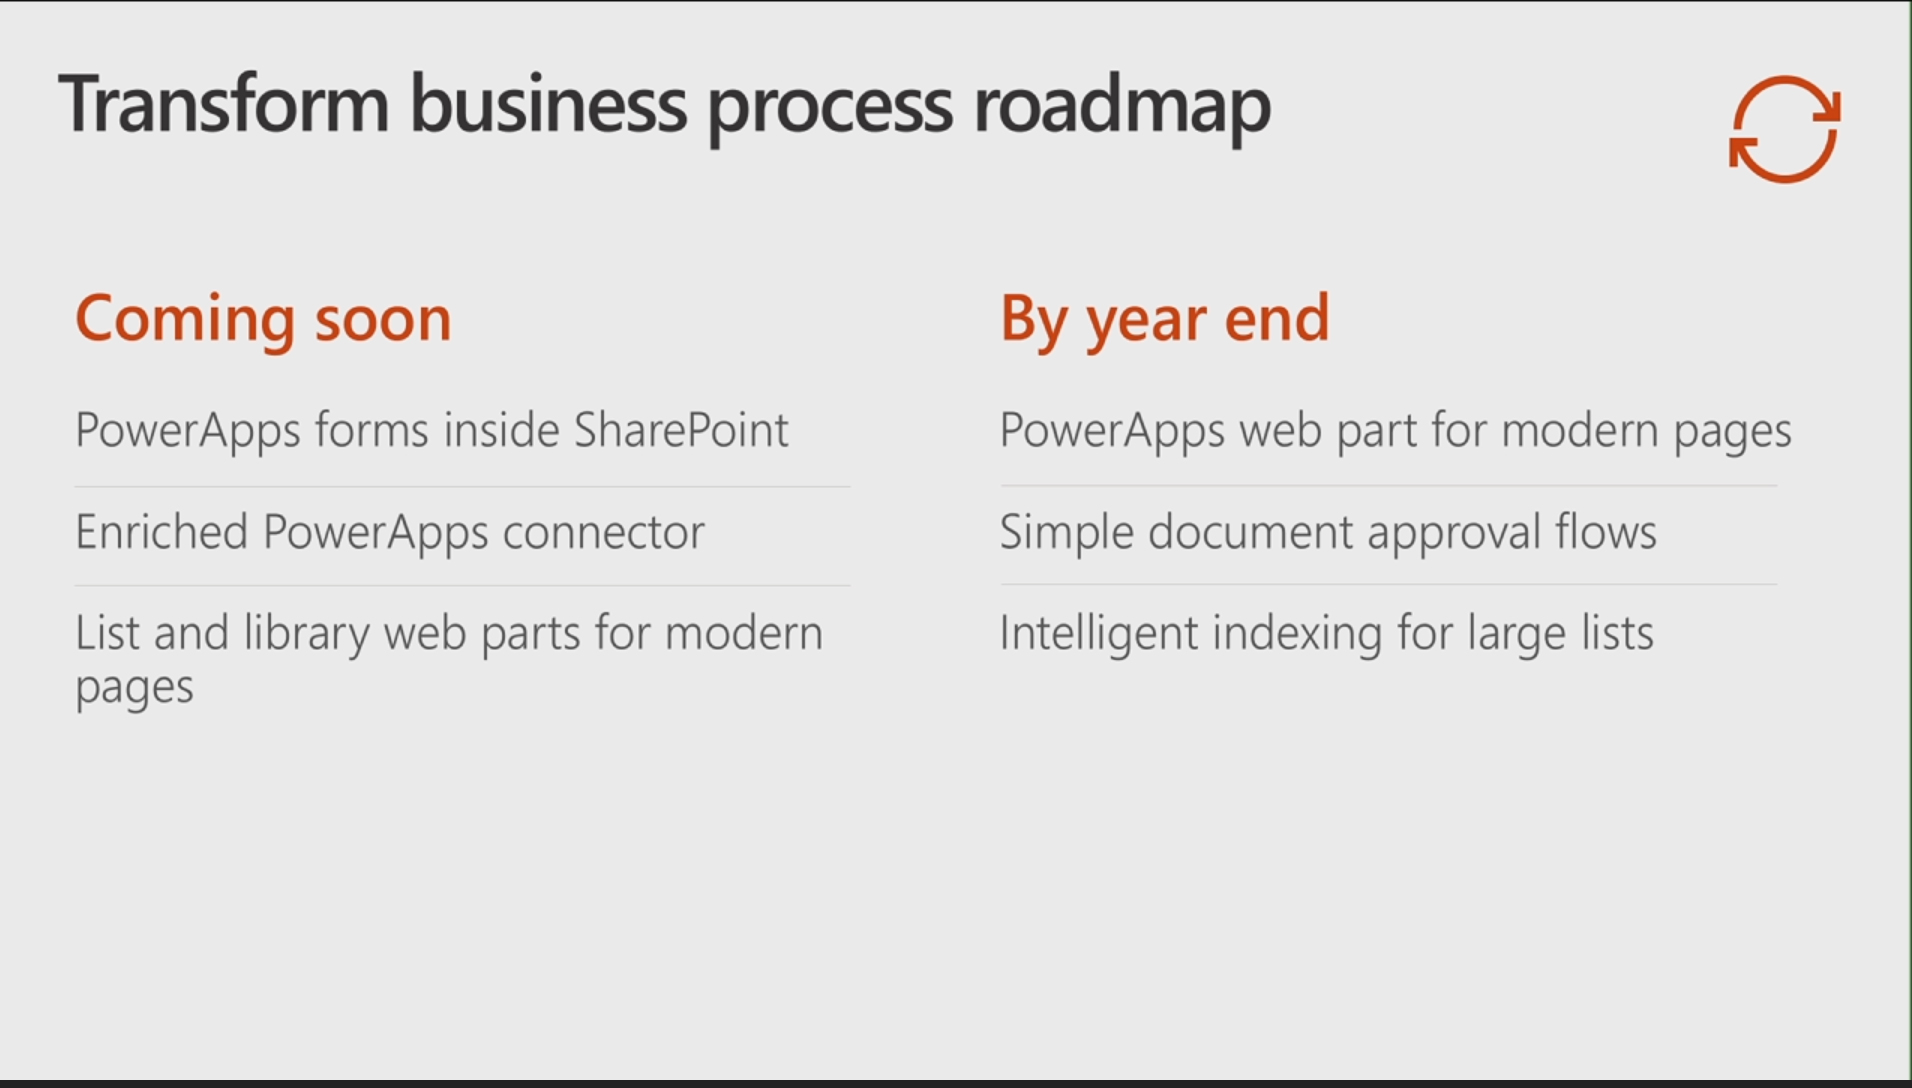 sharepoint virtual summit unveils 2017 roadmap plans redmondmag com